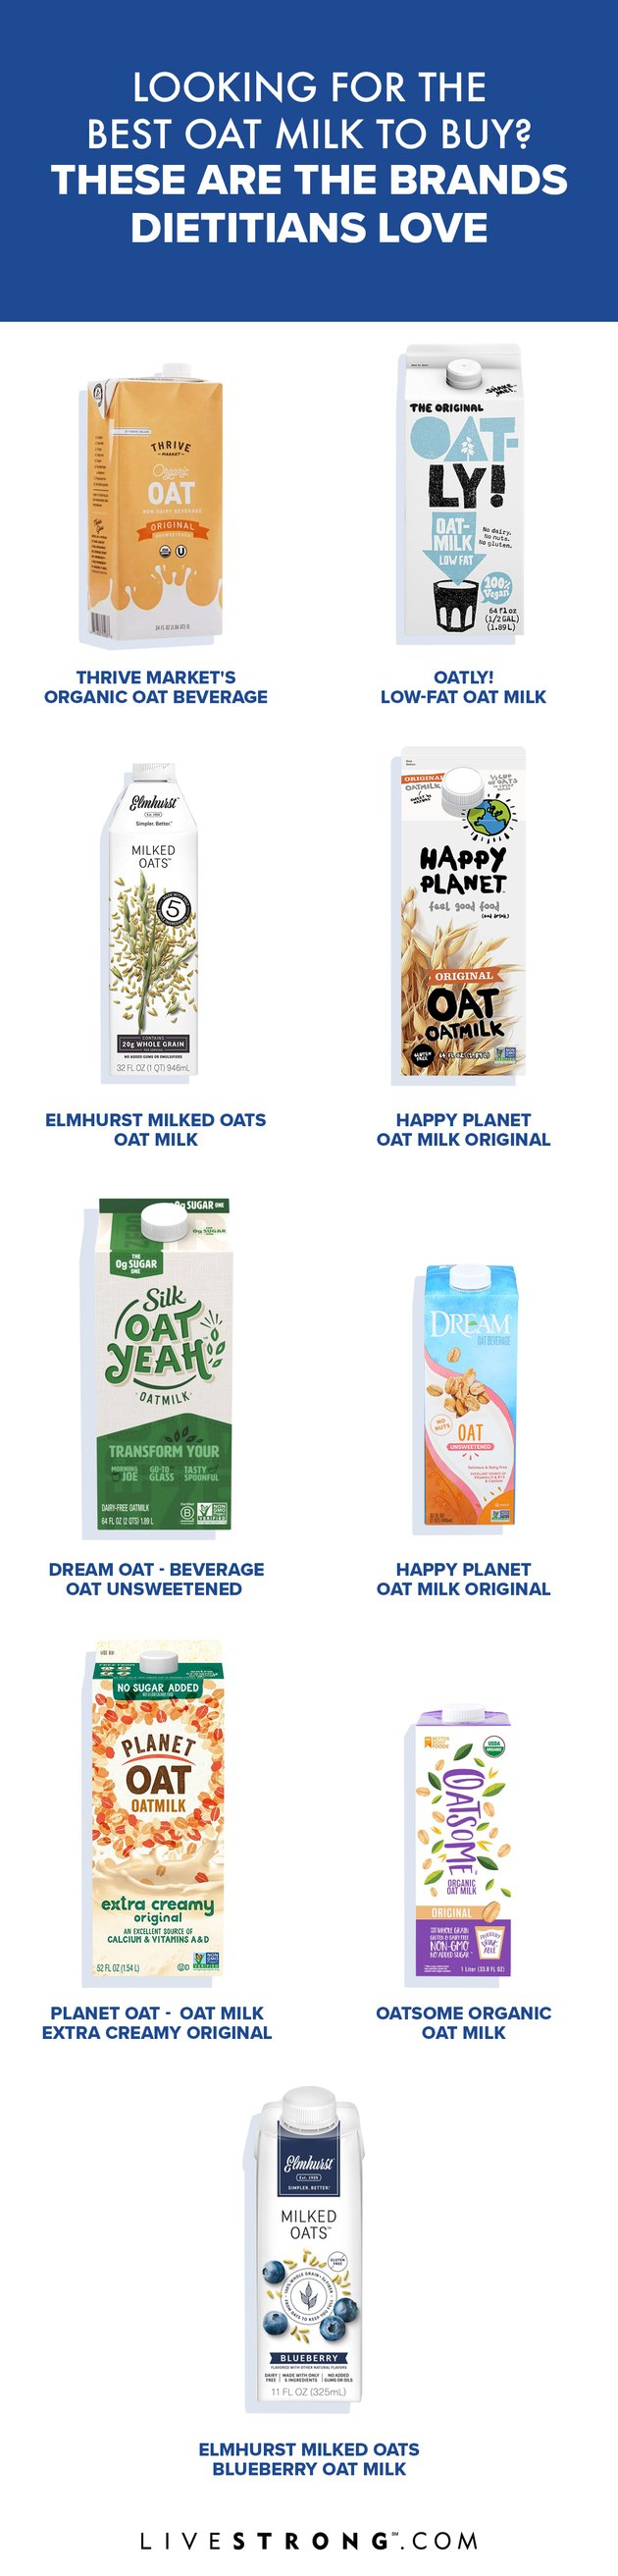 Looking for the Best Oat Milk to Buy? These Are the Brands Dietitians Love